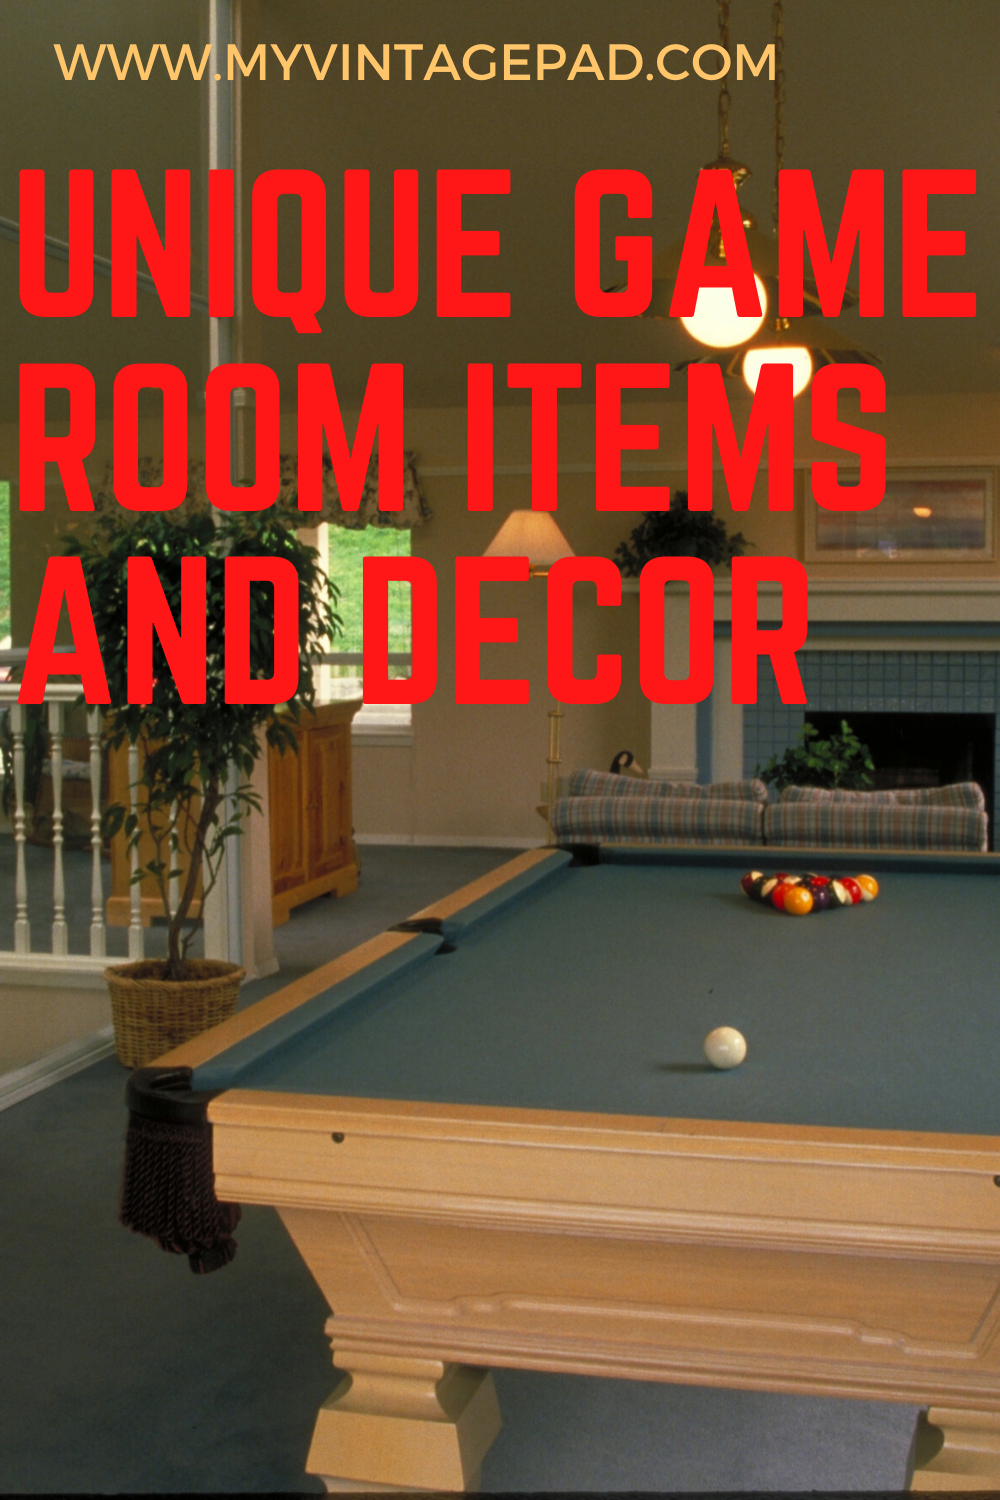 Cool Game Room Items And Retro Decor In 2020 Retro Games Room